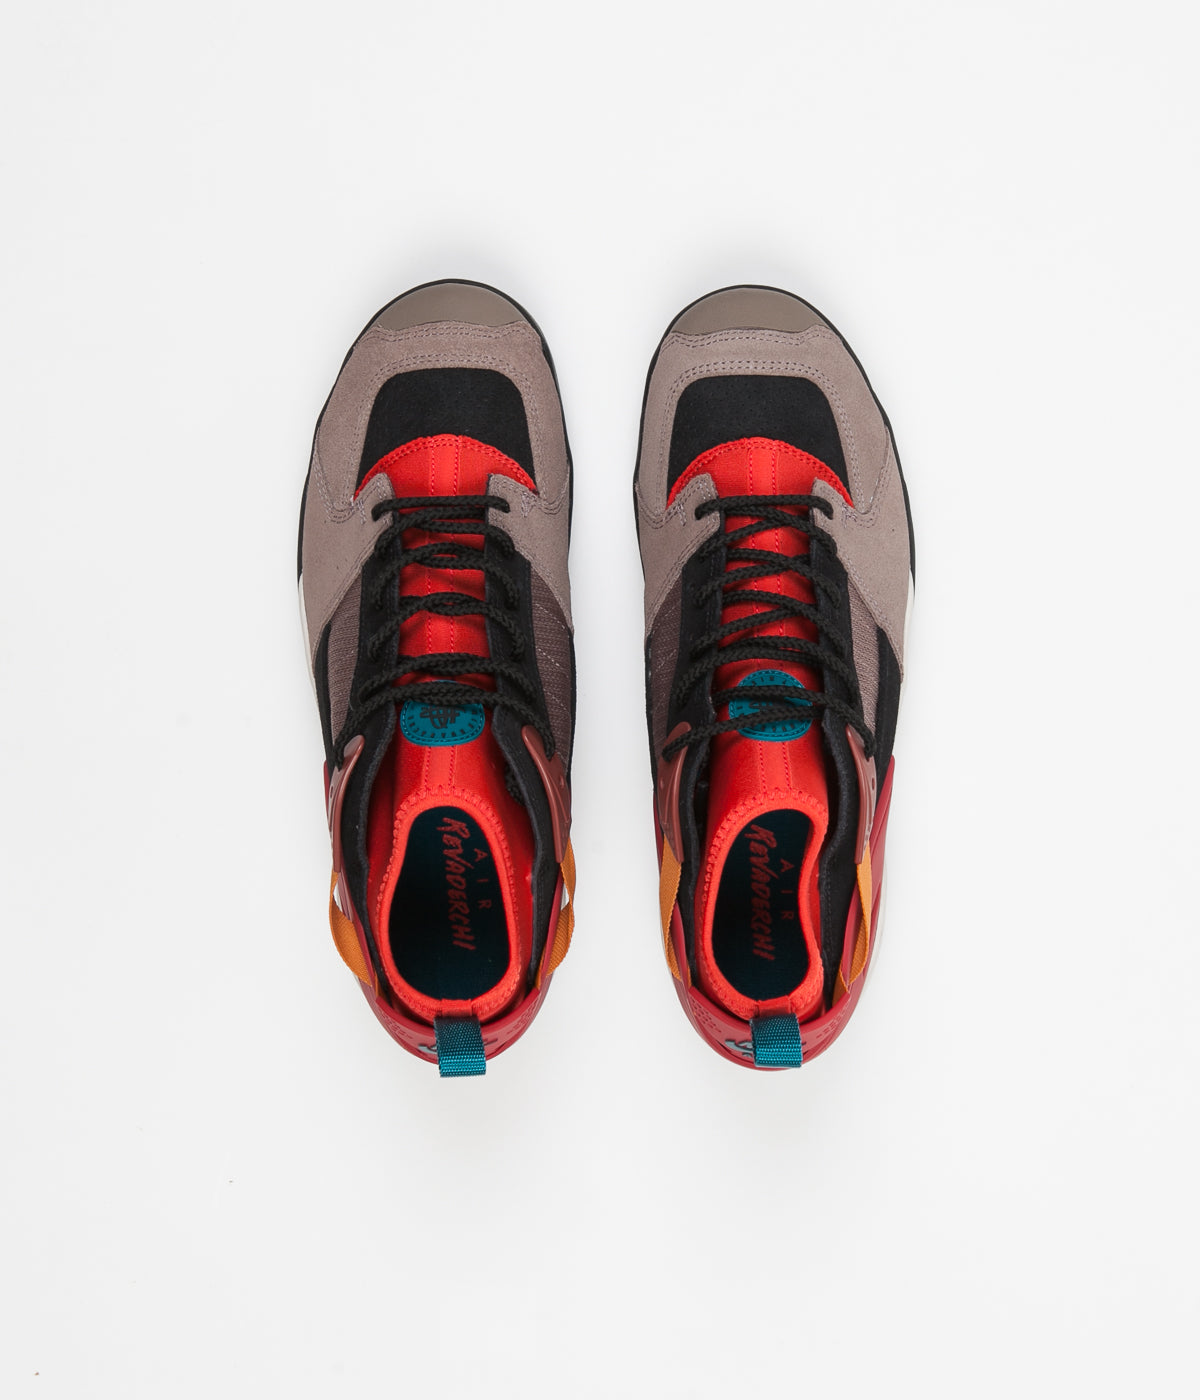 6c76d79242d32 Nike ACG Air Revaderchi Shoes - Gym Red   Geode Teal - Habanero Red -  Monarch ...